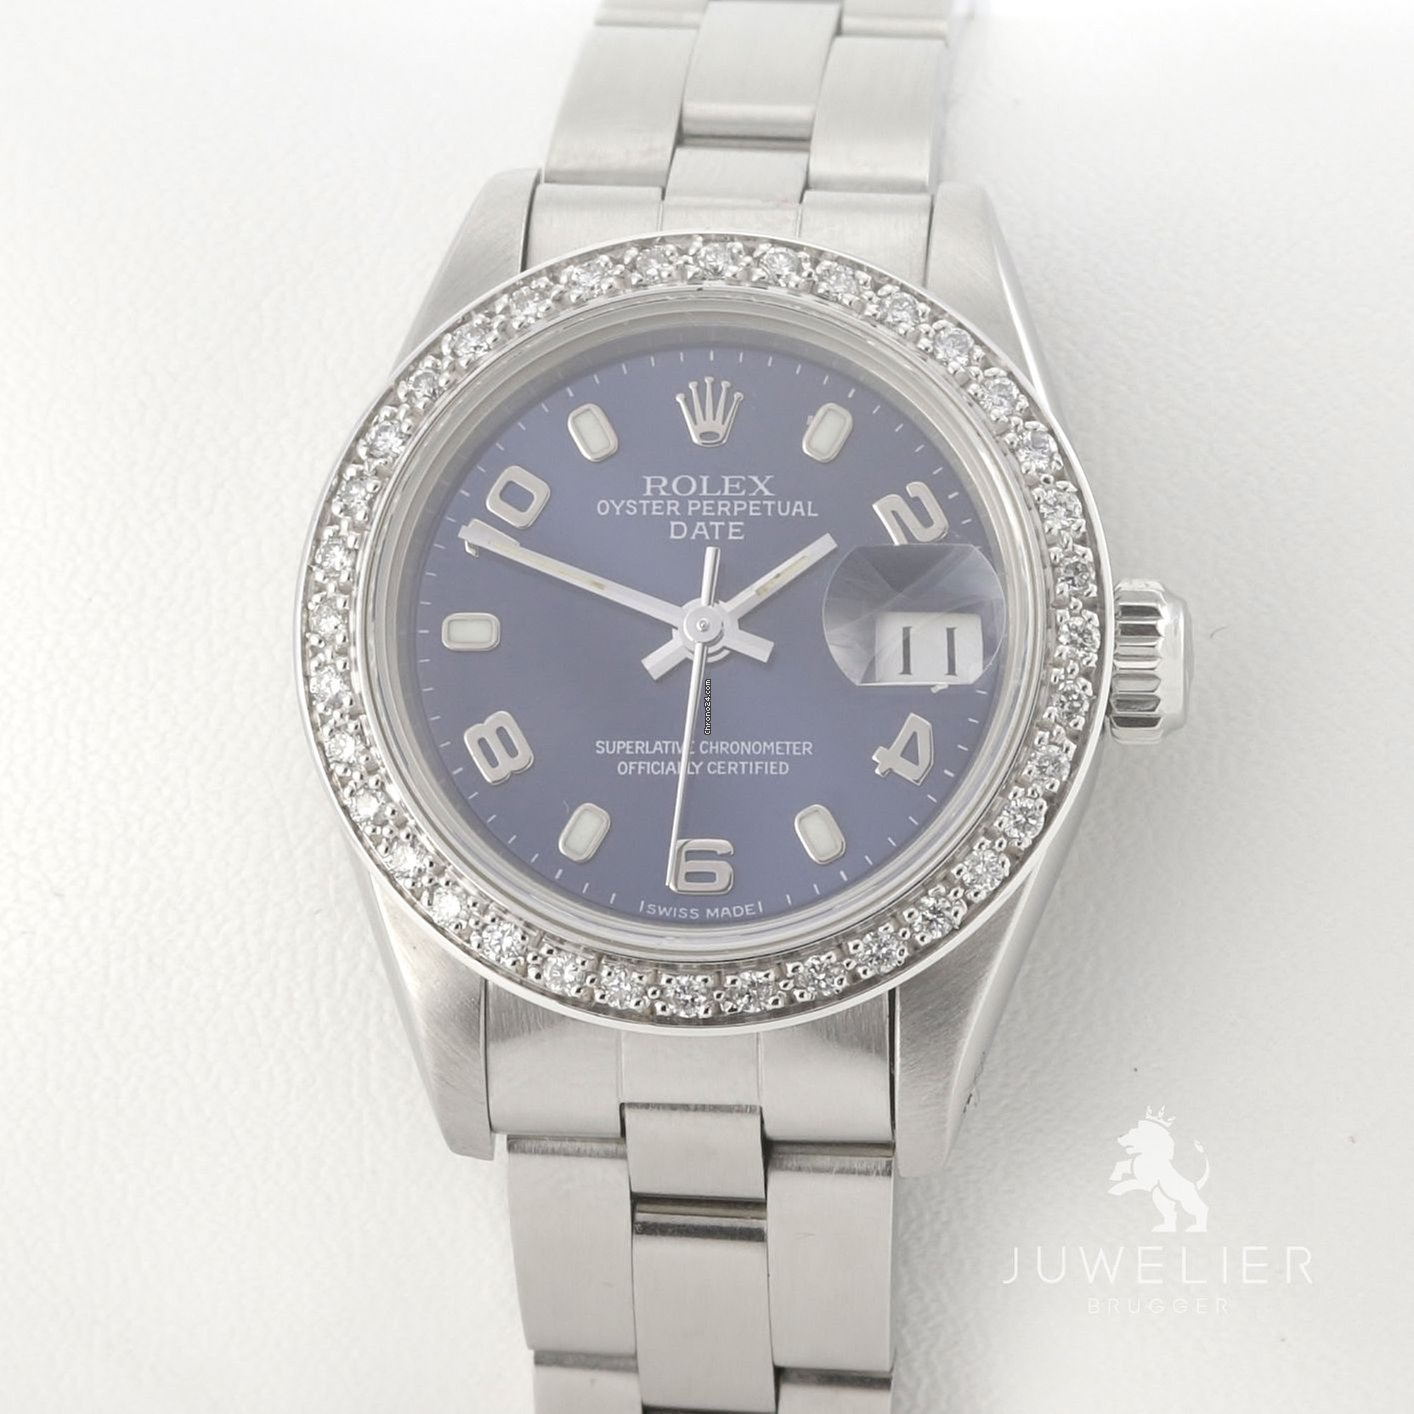 Rolex Damenuhr Rolex Lady Date 26mm Stahl Automatik Diamanten Damenuhr Datejust